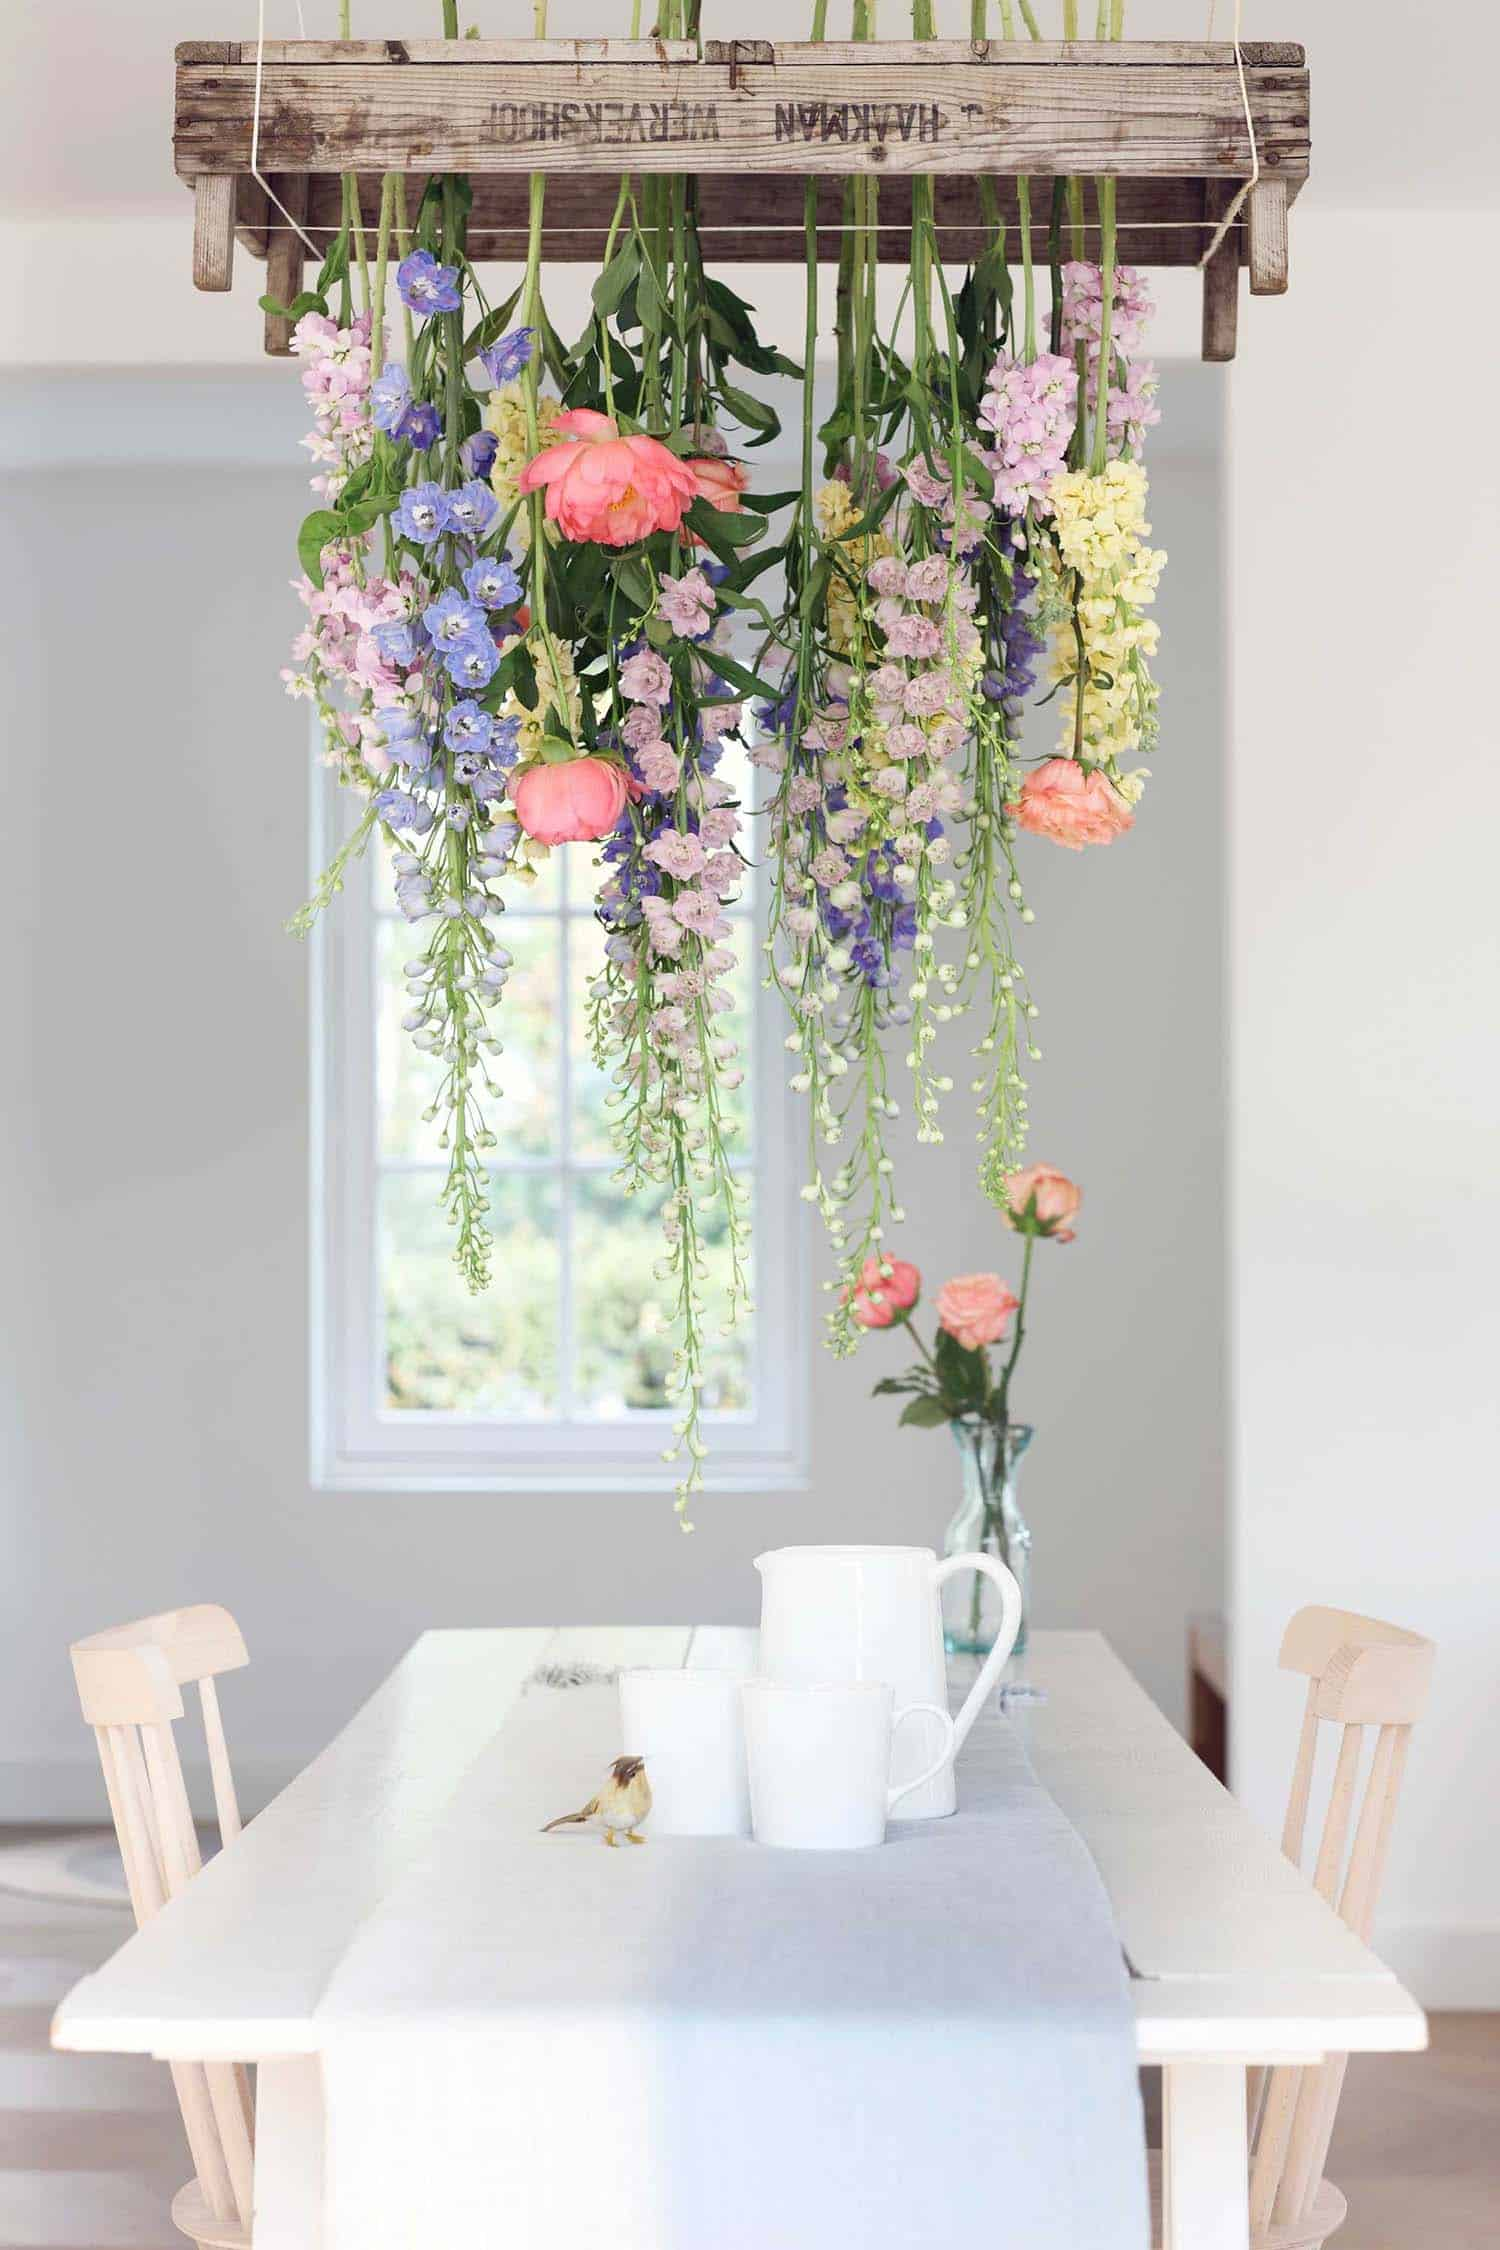 How to decorate your home with spring floral arrangements 02 1 kindesign